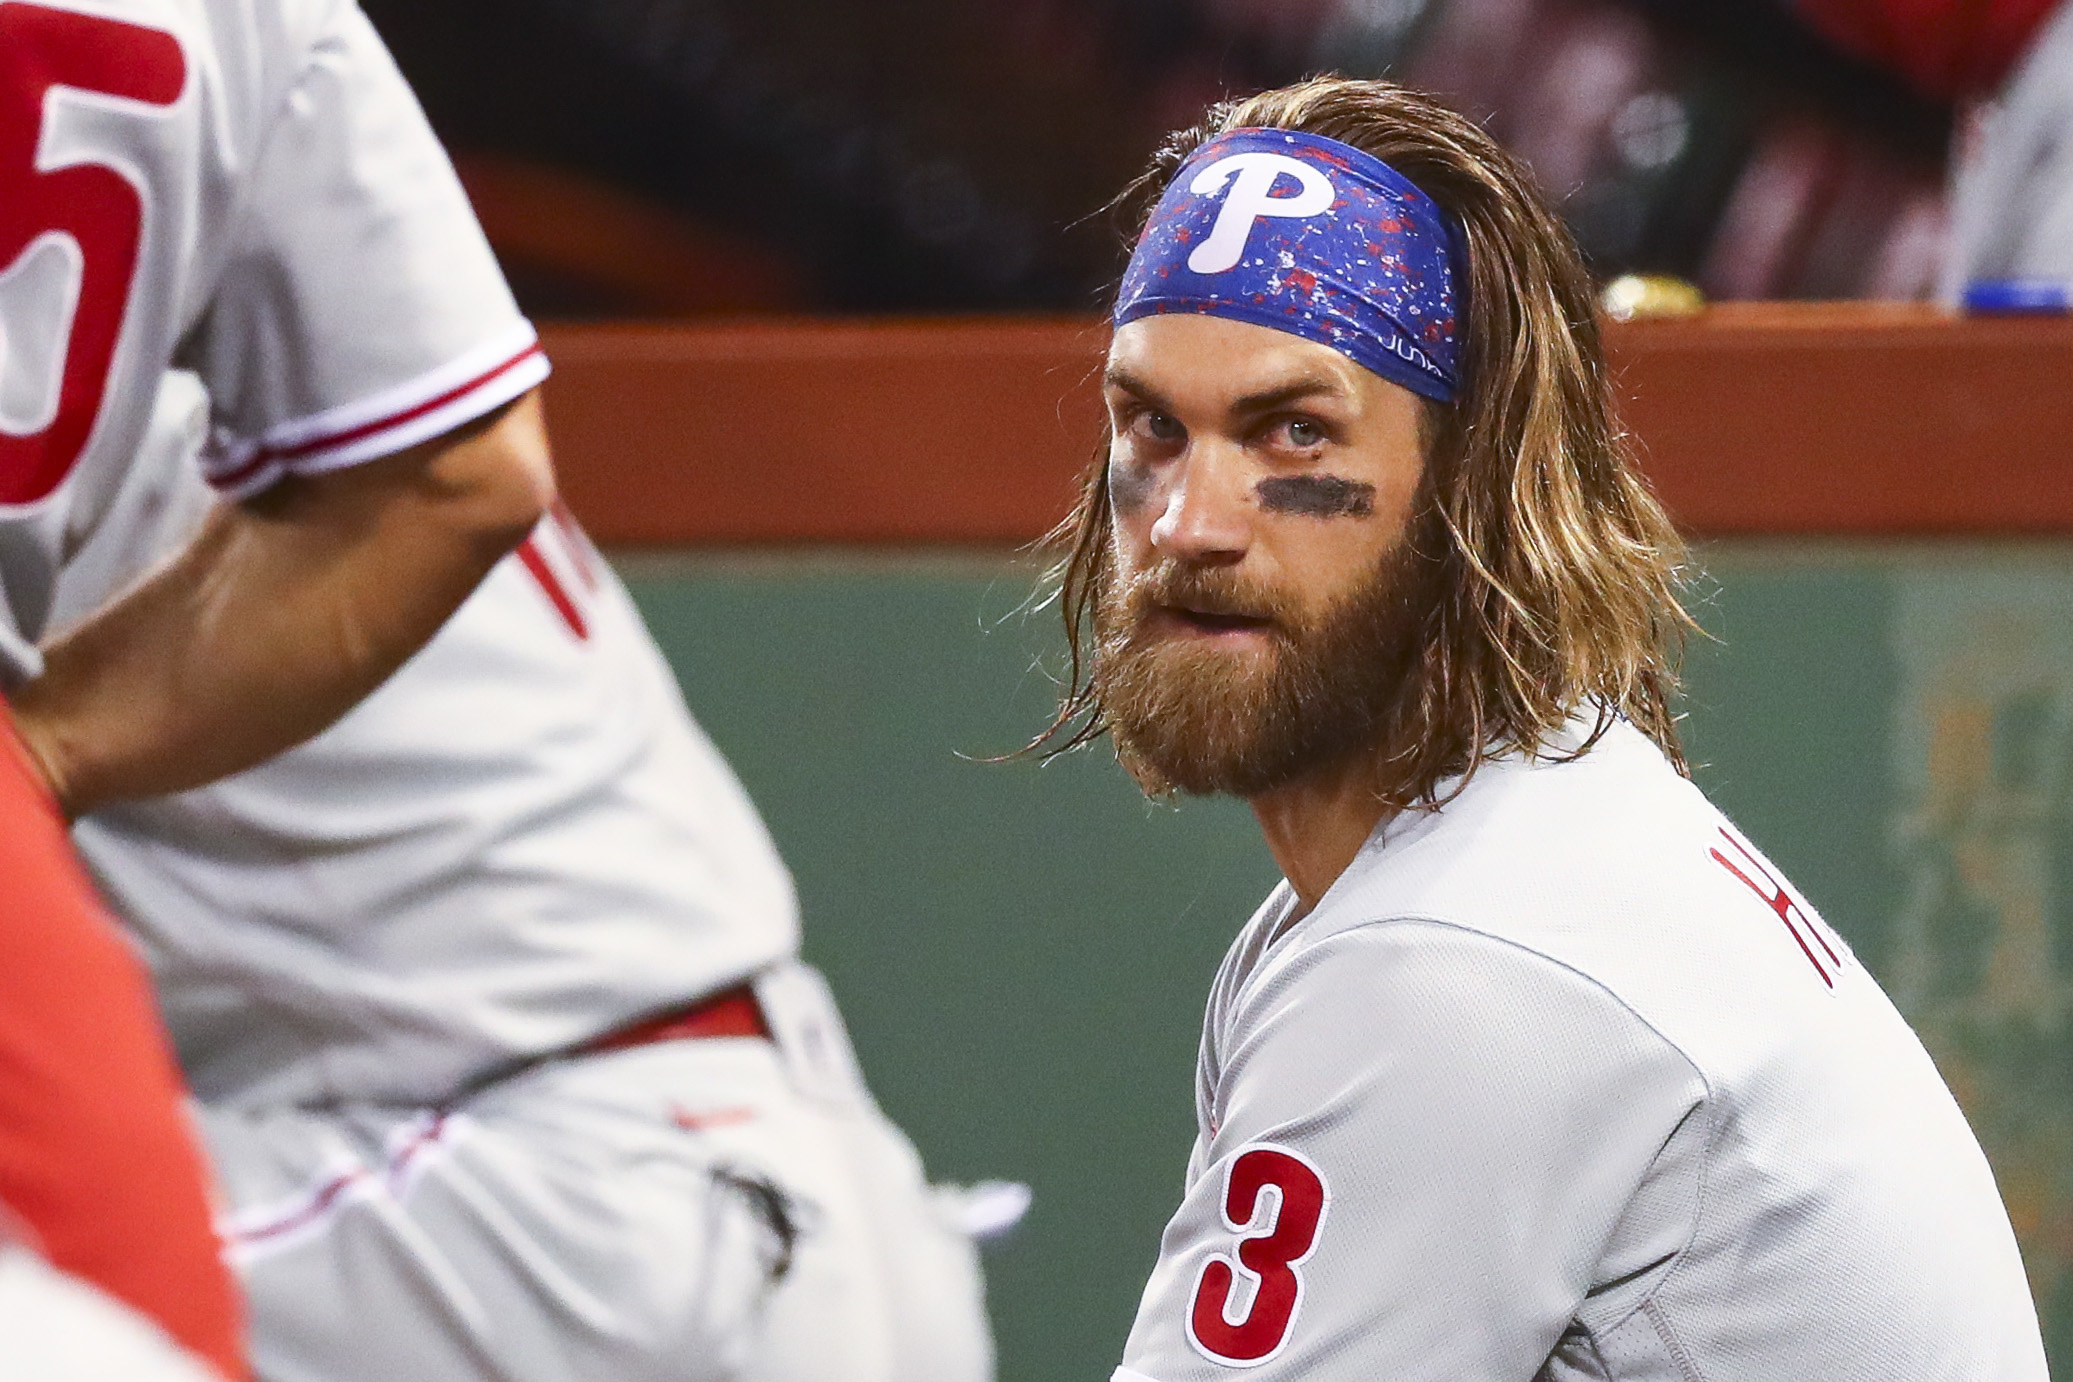 Bryce Harper in the Phillies' dugout.